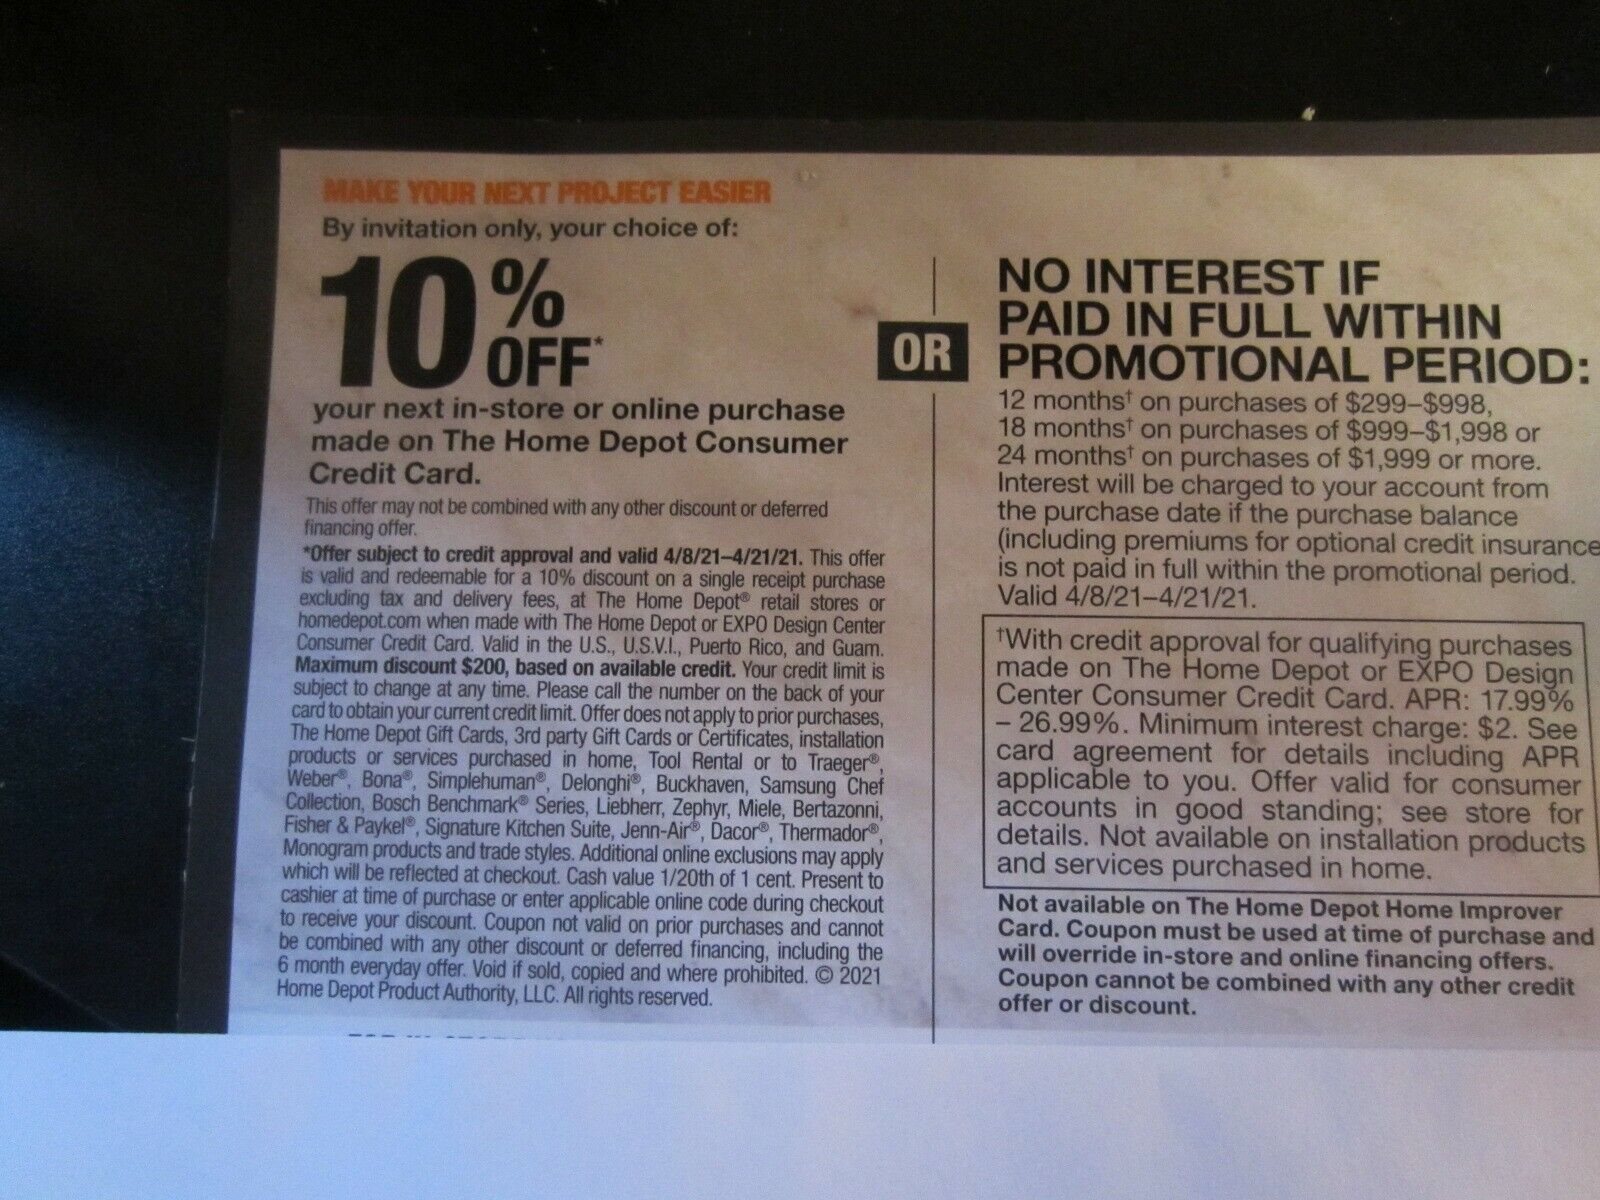 Home Depot Coupon 10 Off -OR - 24 Months No Interest Online-In Store 4/8-4/21 - $24.00